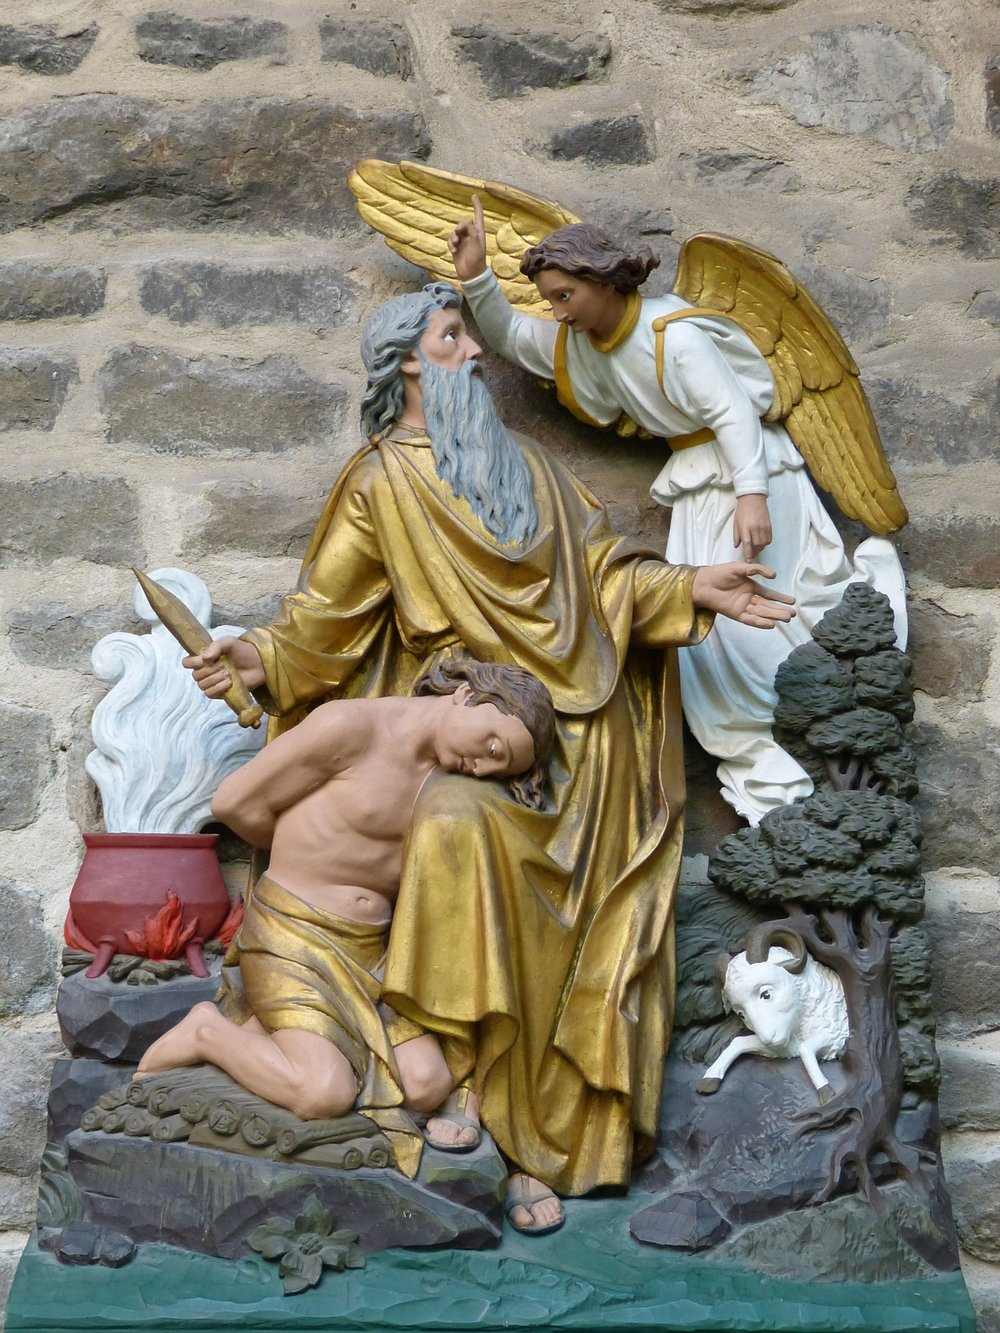 nativity-scene-figures-570422_1920.jpg